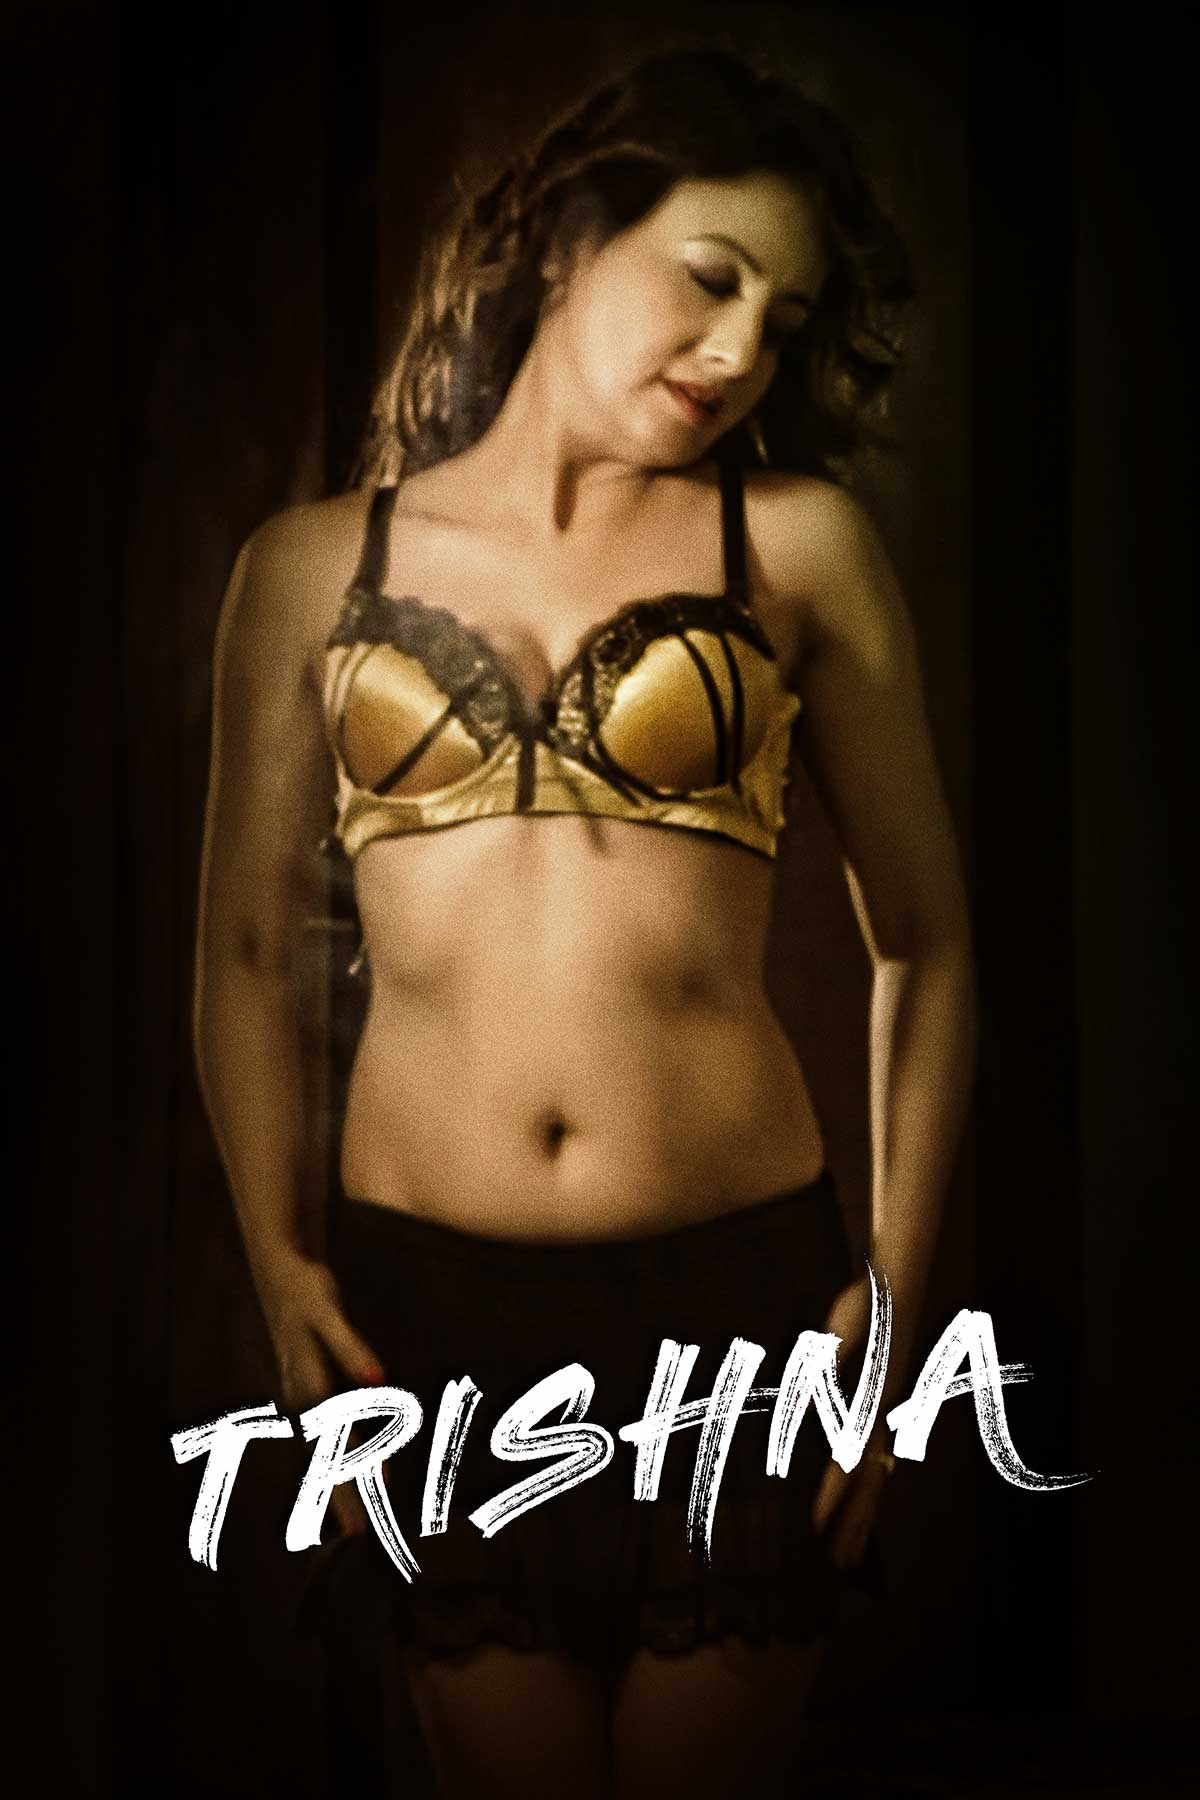 18+ Trishna 2020 S01 Hindi Kooku App Complete Web Series 720p HDRip 900MB x264 AAC